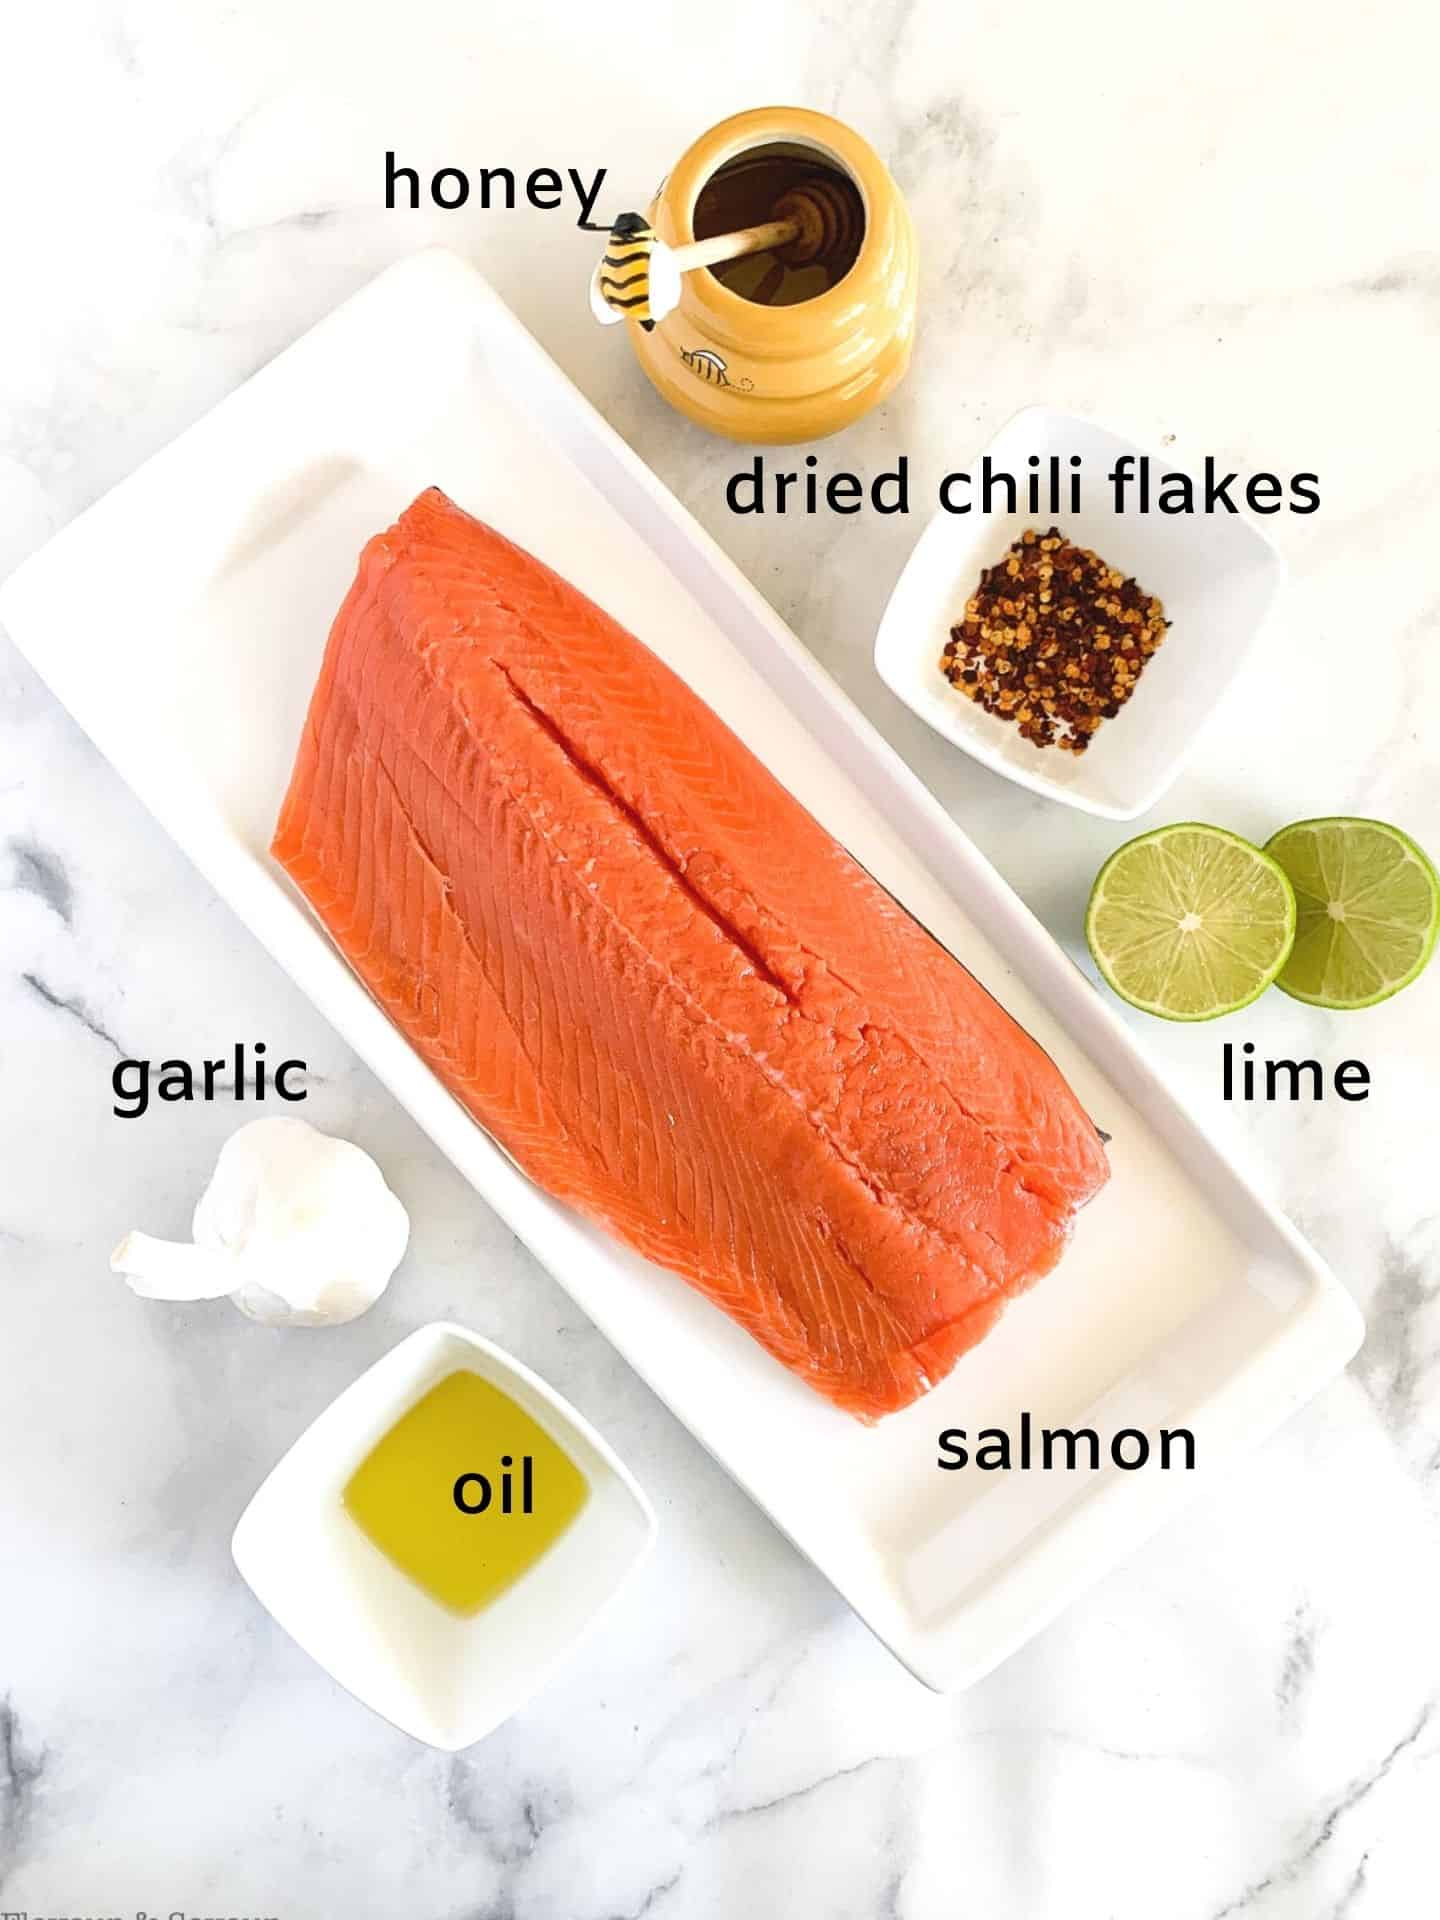 Labeled ingredients for Honey Chili LIme Glazed Salmon